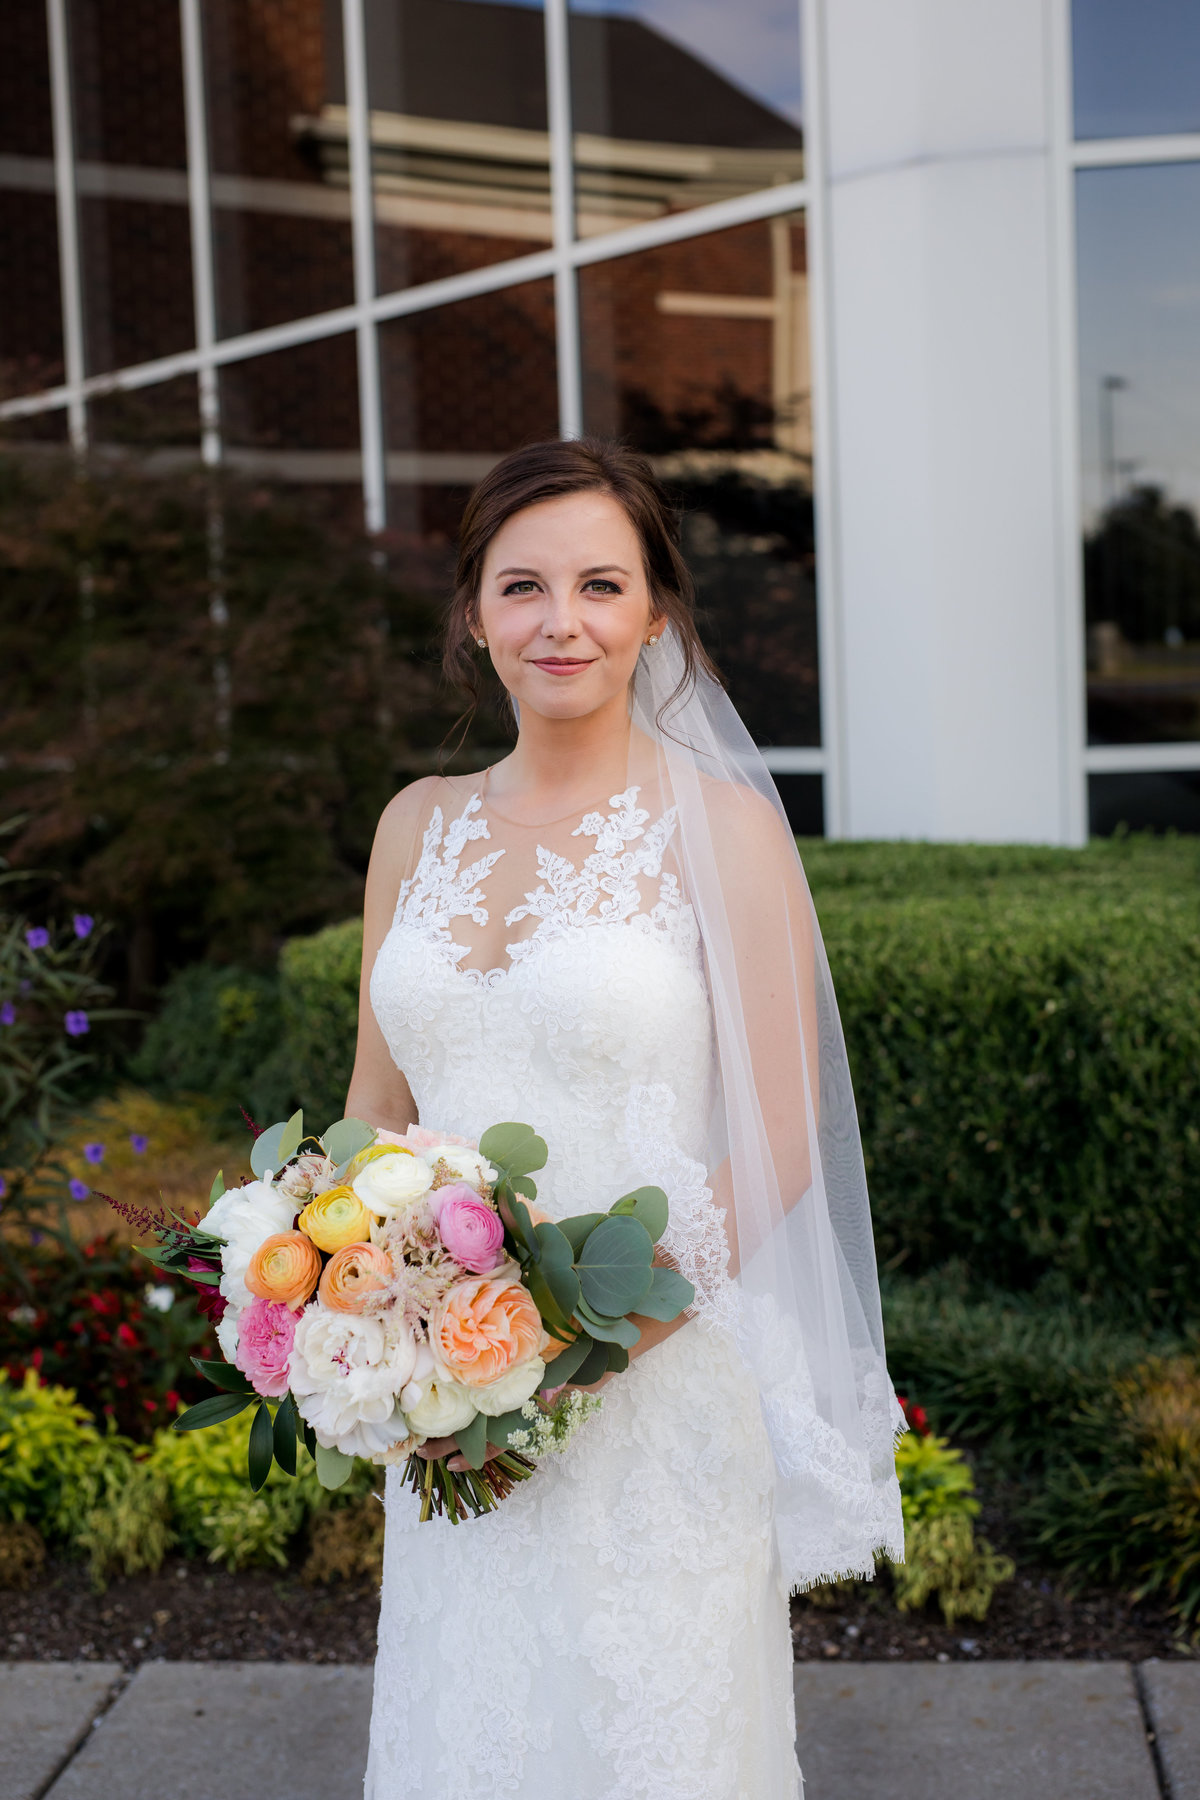 Baptist Wedding - Church Wedding - Church Weddings - Nashville Church Weddings - nashville TN - Nashville Weddings - Nashville Wedding - Couples Who Love Jesus - SouthernBride - SouthernBrides - Nashville Bride018